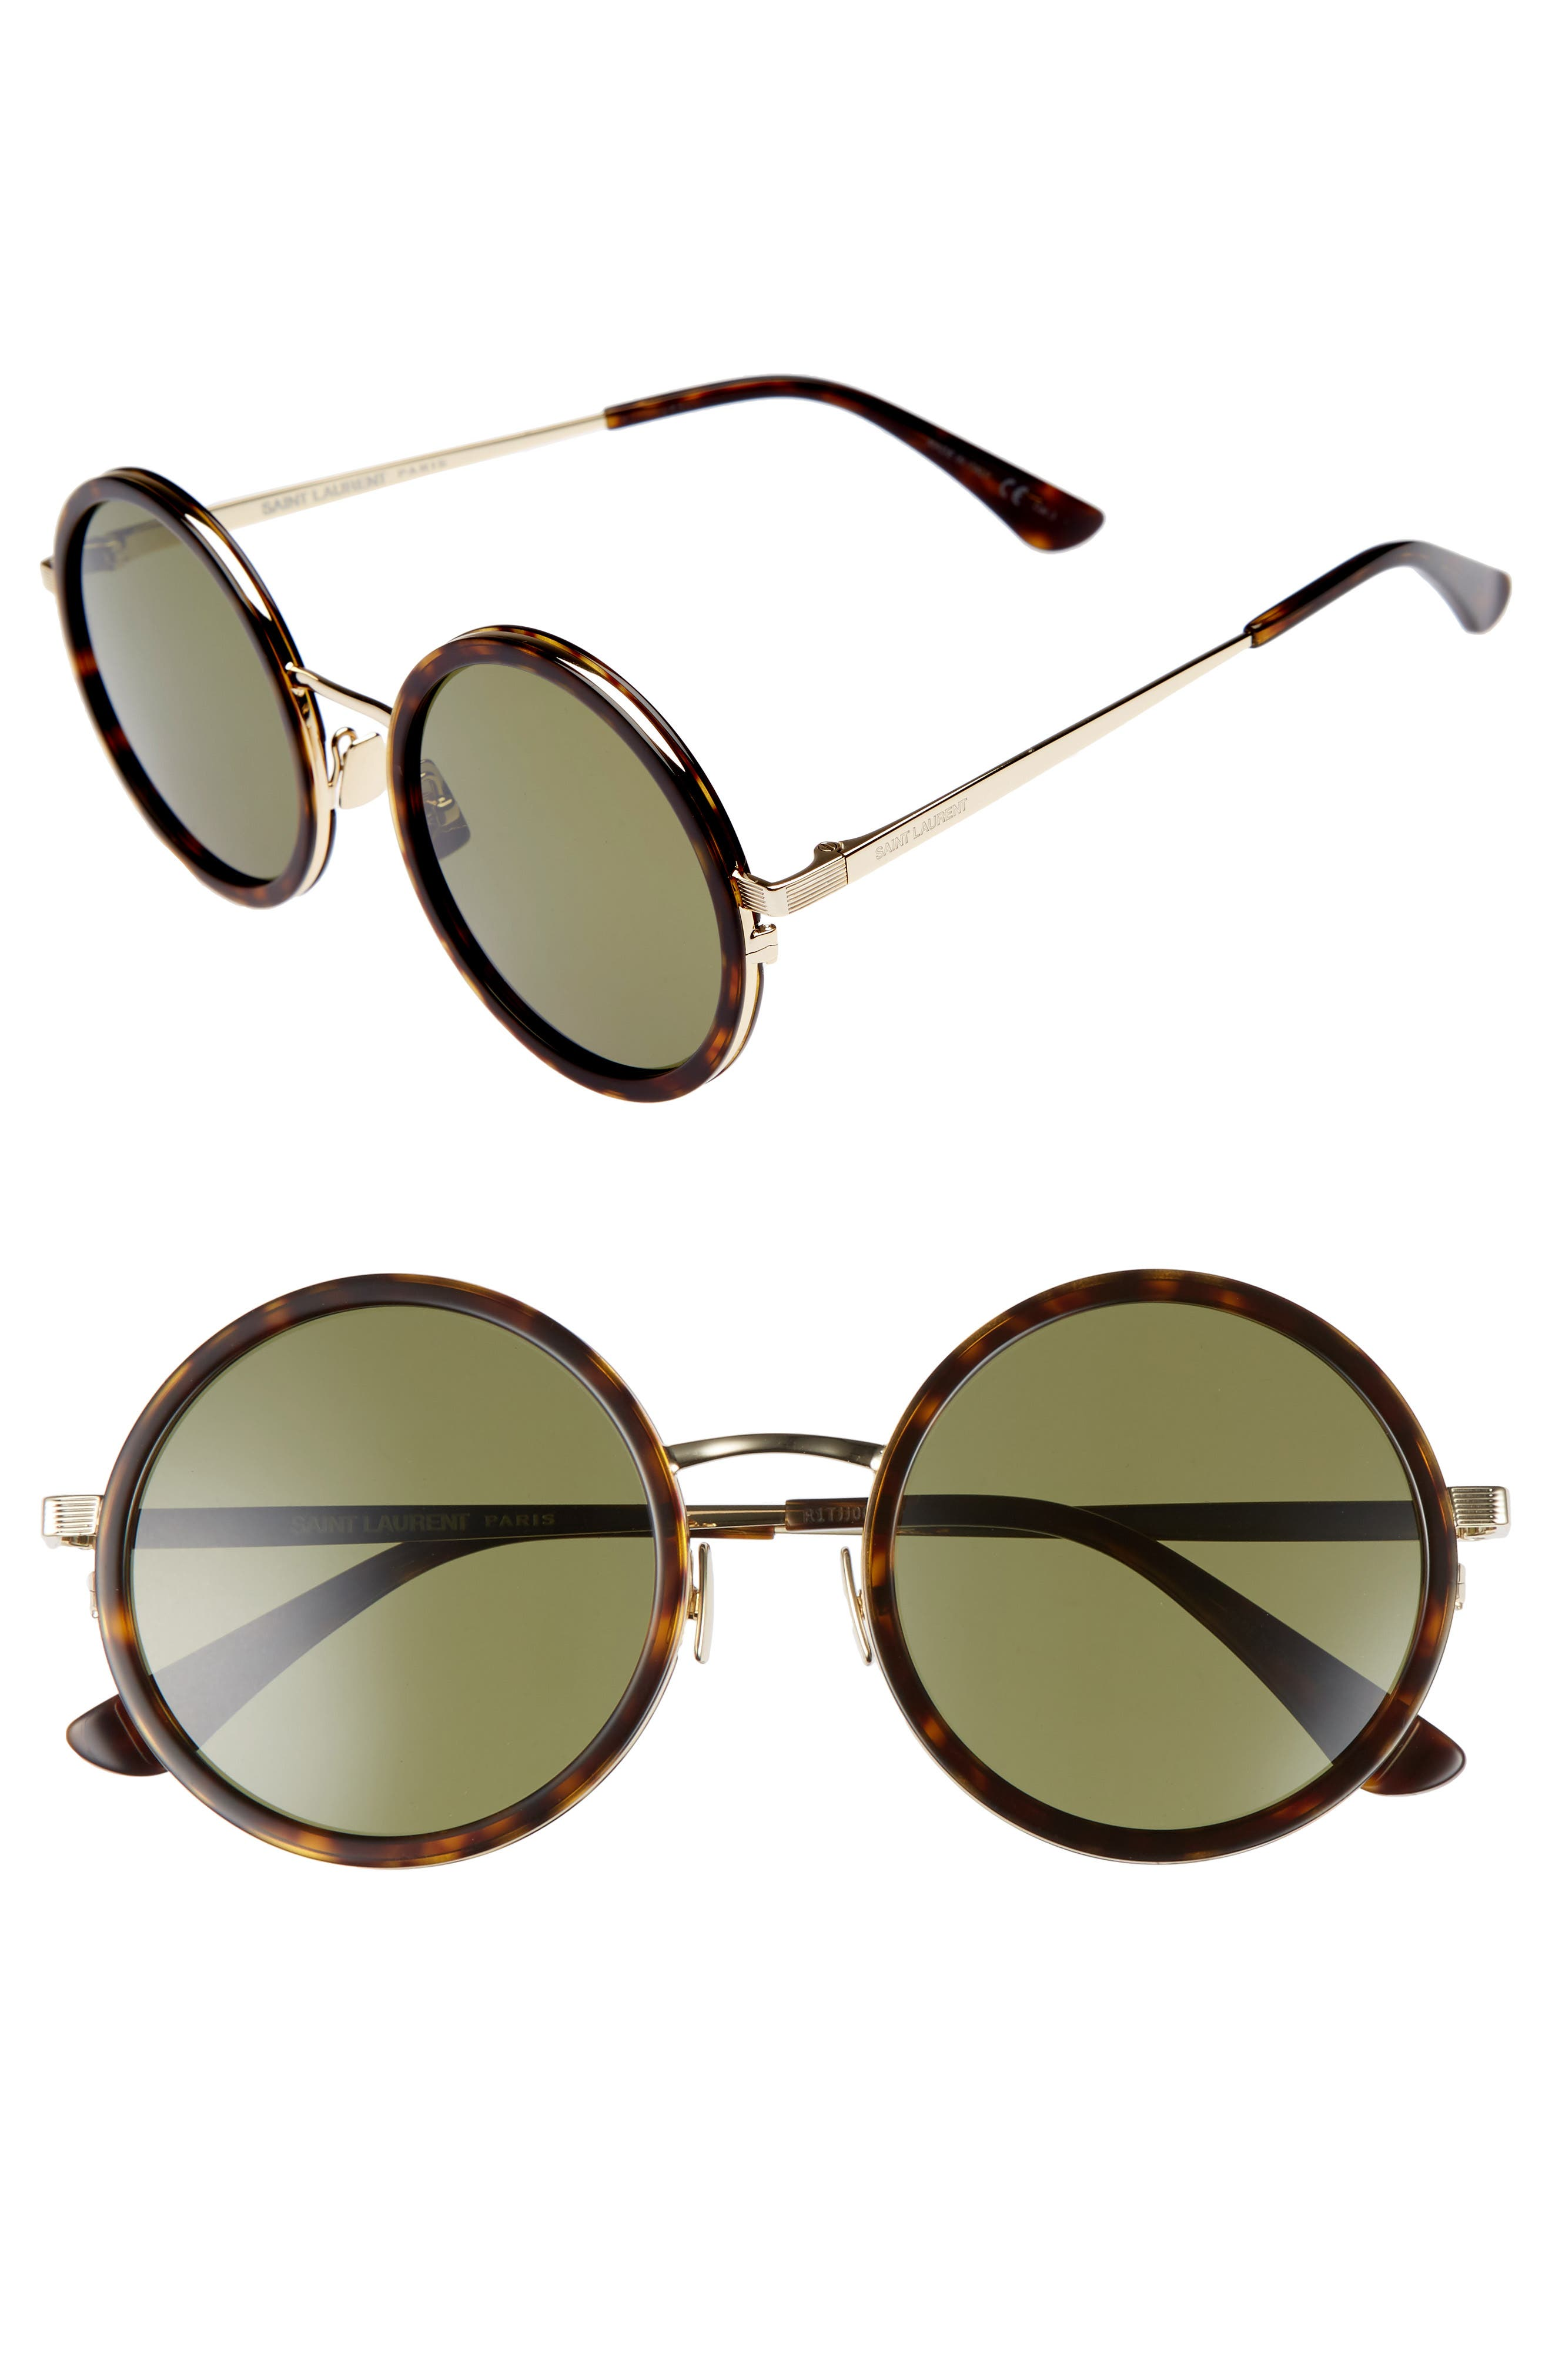 52mm Round Sunglasses,                             Main thumbnail 1, color,                             Havana